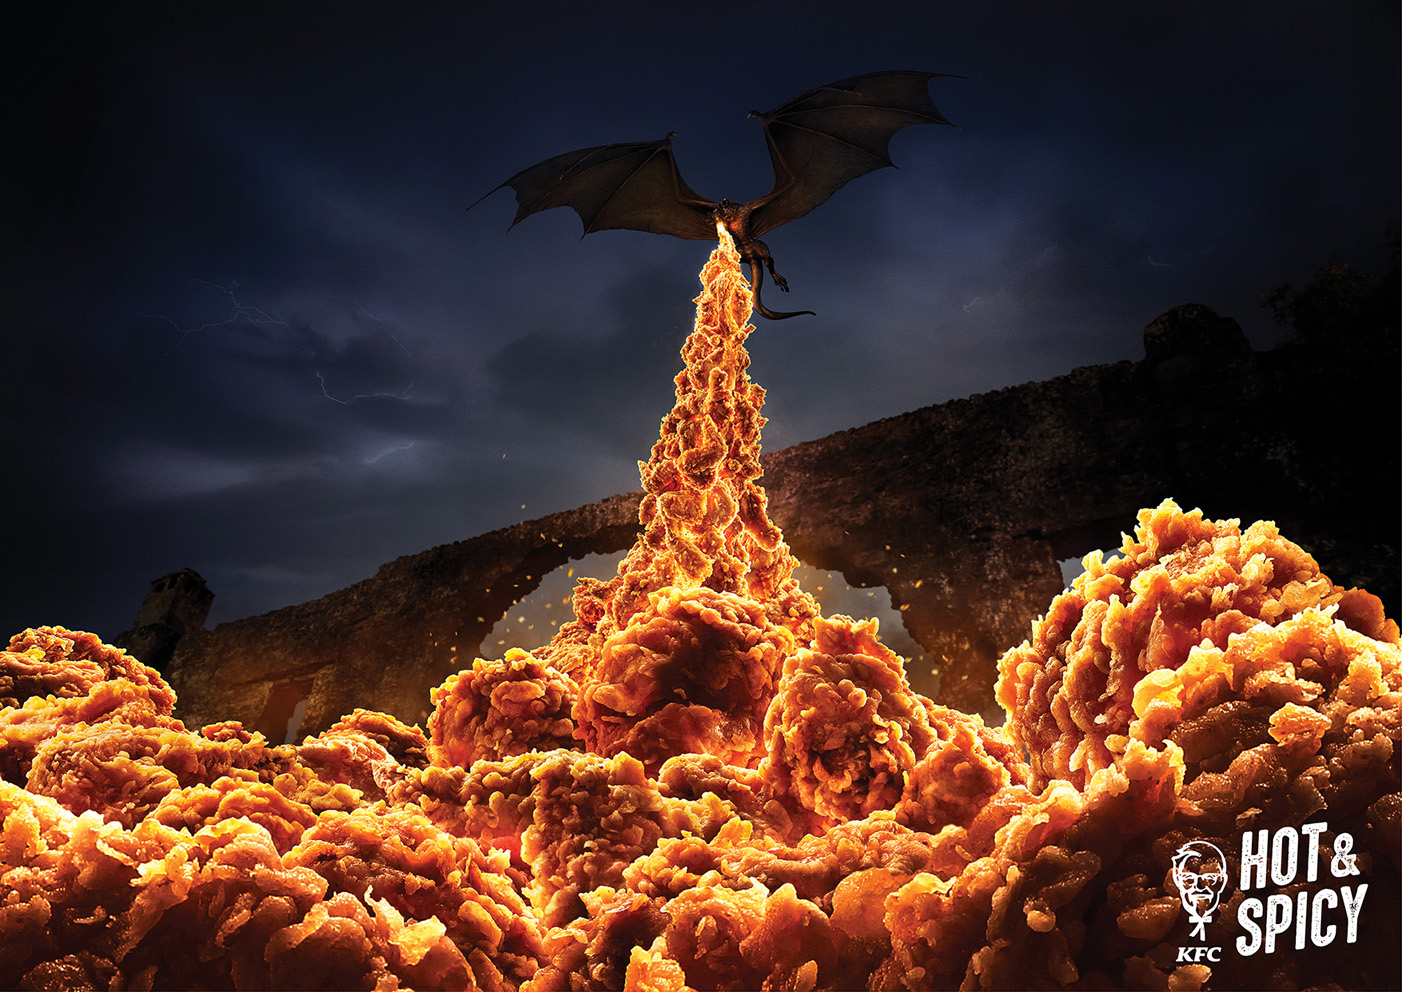 Seen+Noted: KFC 'Hot & Spicy' campaign reignited by Ogilvy Hong Kong to mark the final season of Game of Thrones